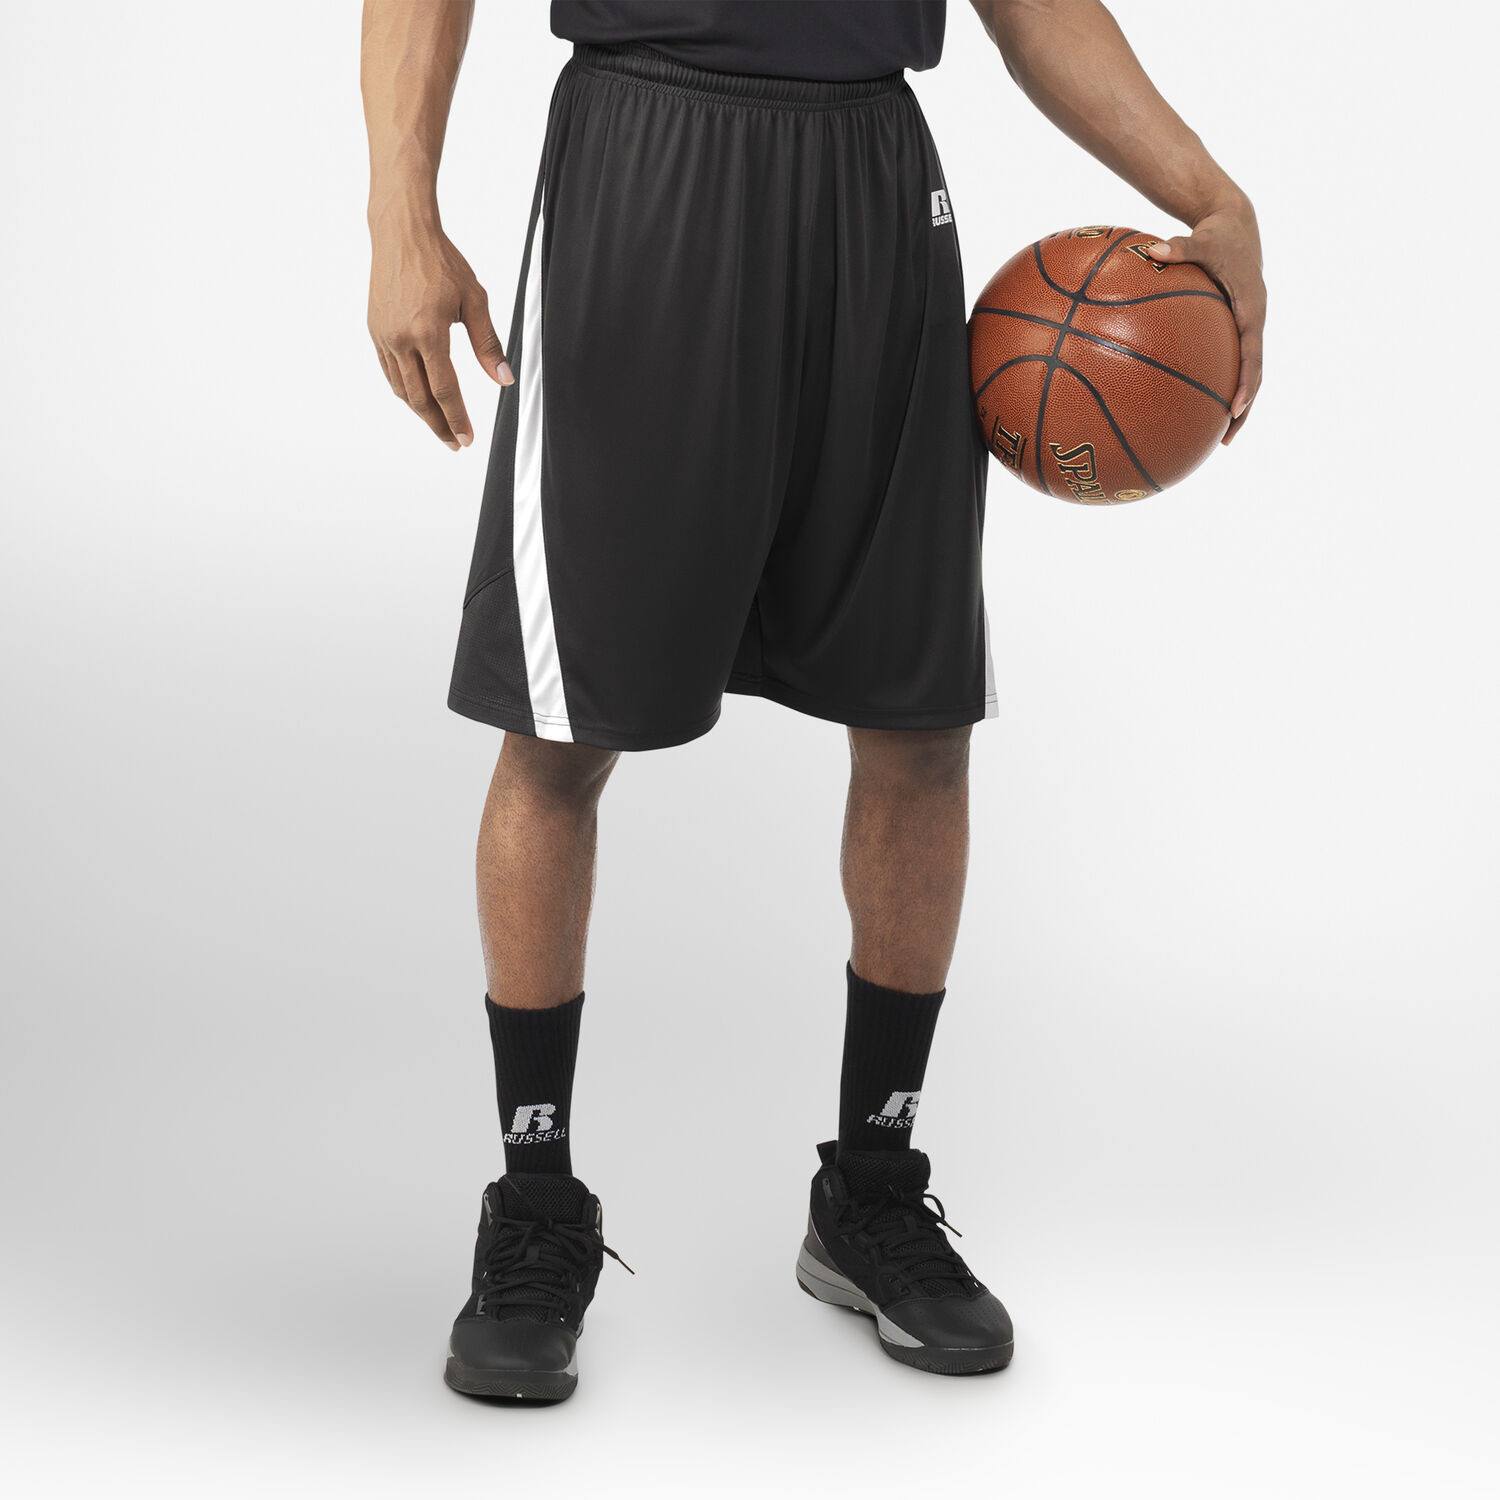 Men's Basketball Shorts - Russell US | Russell Athletic